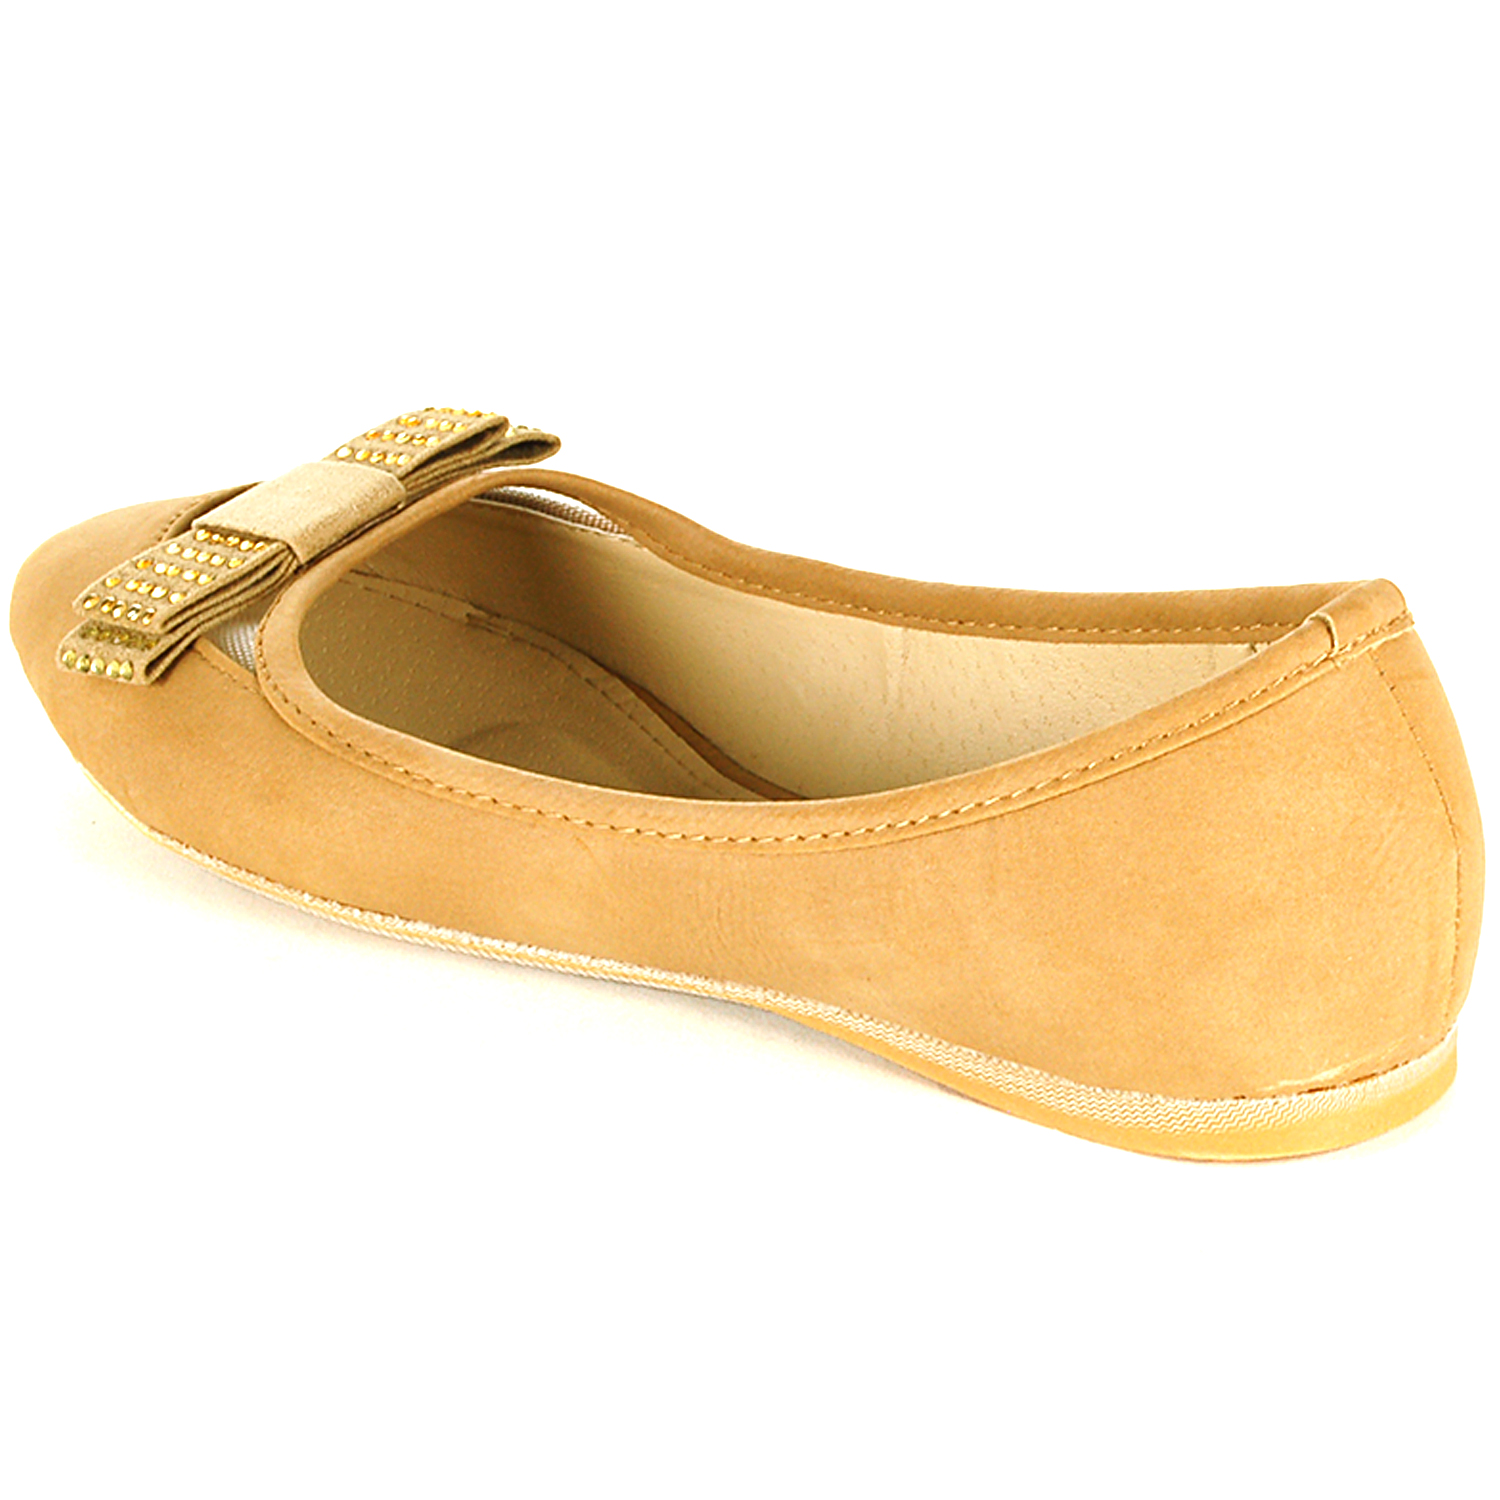 Find the cute flats you want at needloanbadcredit.cf our collection of sexy flats,suede flats,cheap flats,studded flats,leather flats,ballet flats,ballerina flats,oxford flats,loafer,lace up flats and leopard needloanbadcredit.cf can find your most cute cheap flats here.